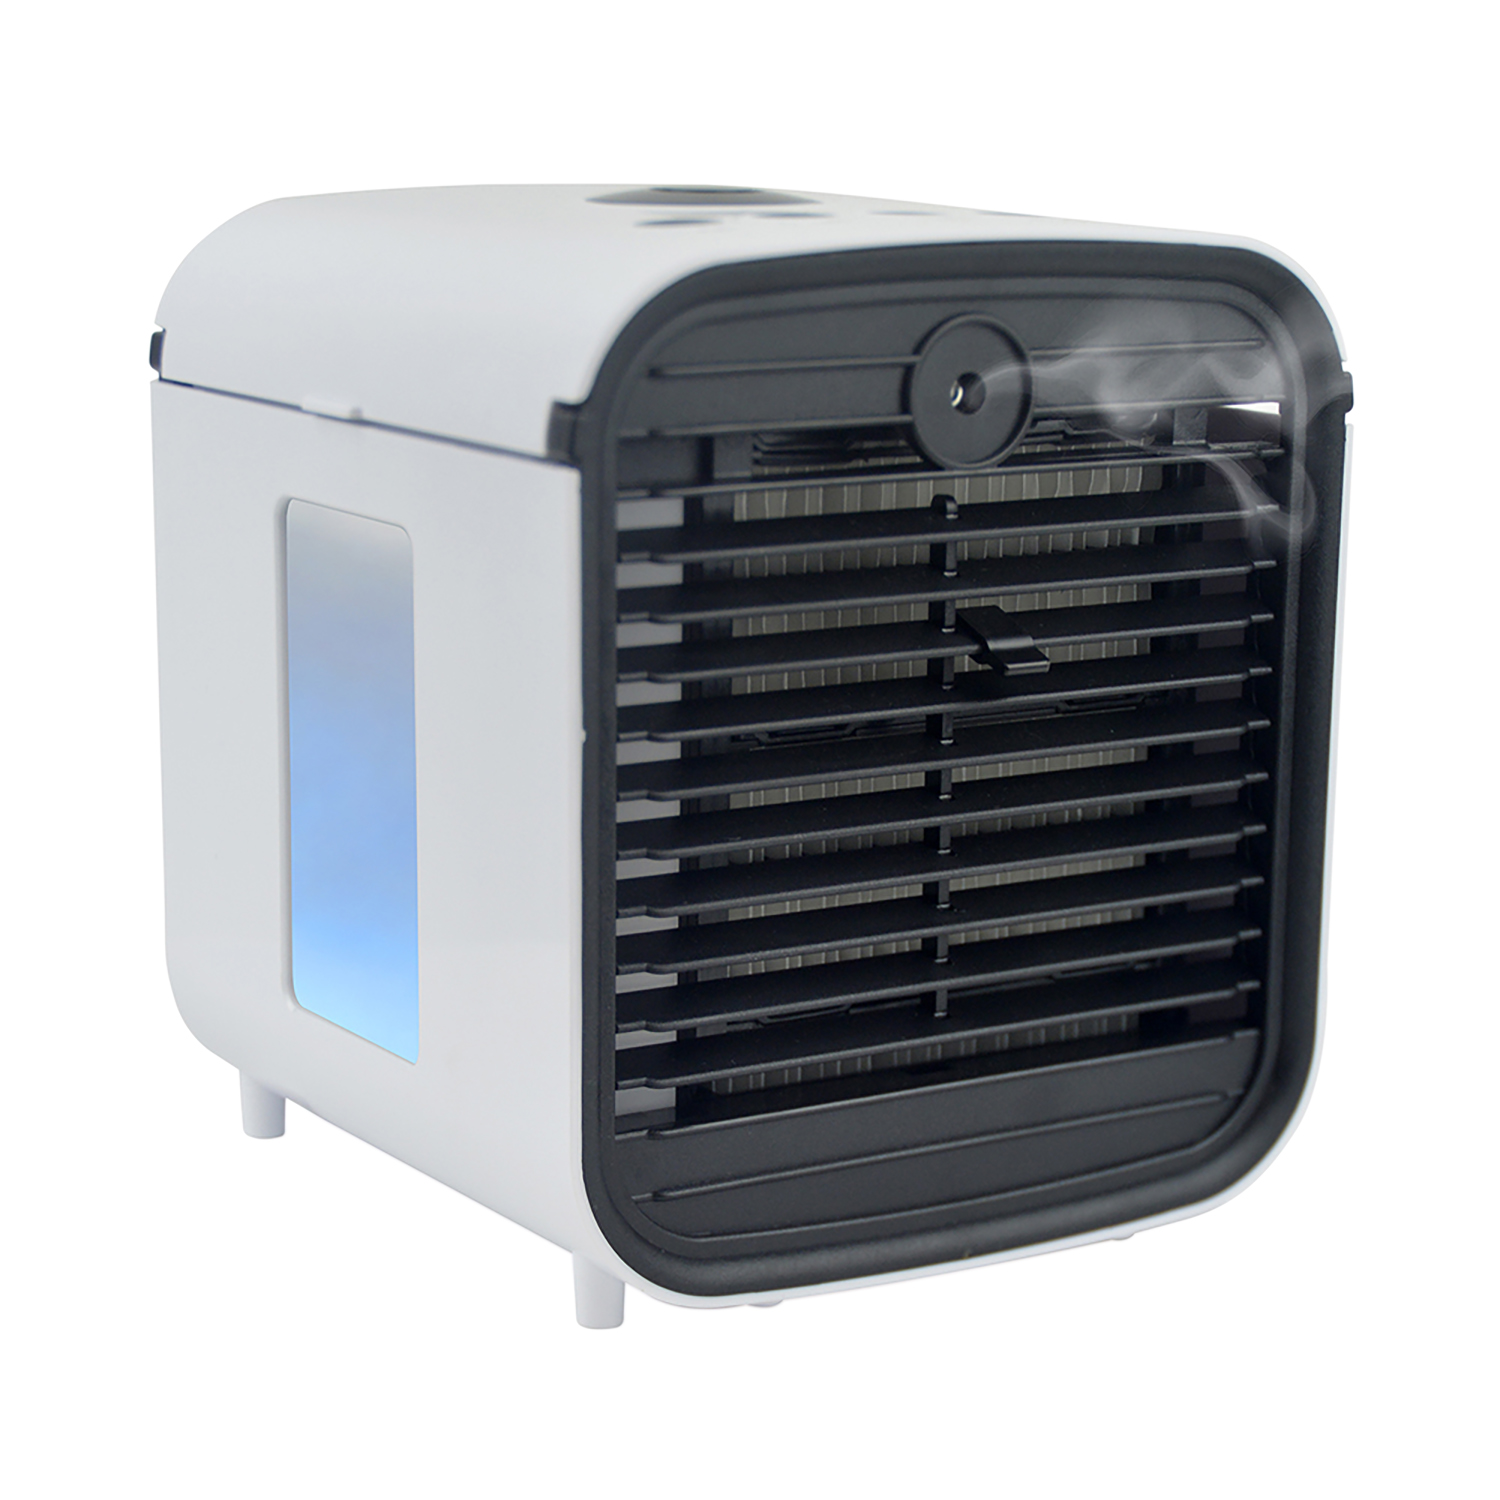 Air Conditioning Units Lloytron Staycool Arctic Blast Evaporative Air Cooler USB Powered 140x145x150mm White Ref F9002WH